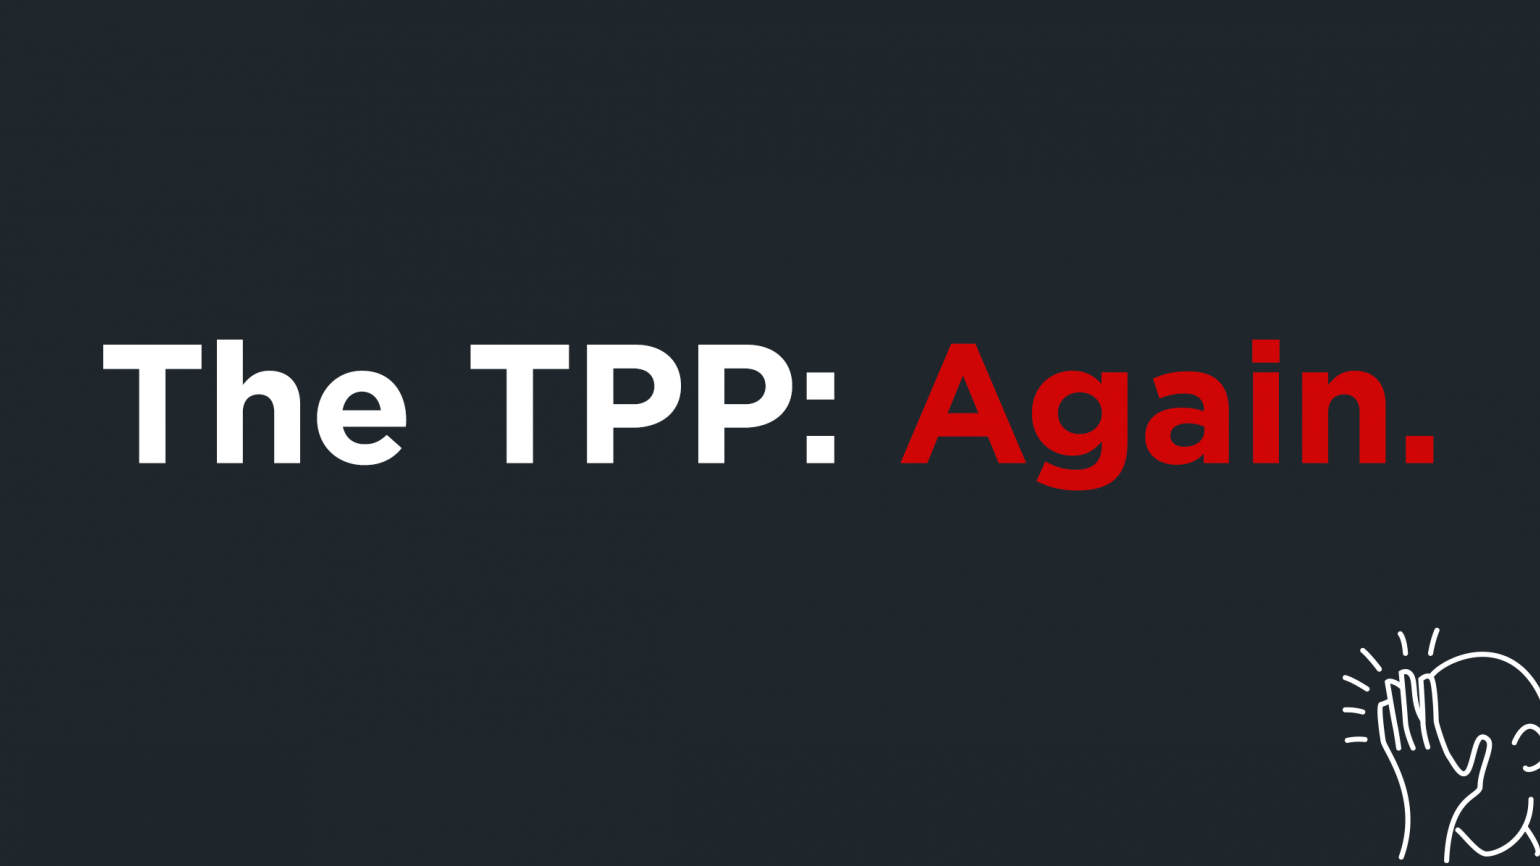 The TPP: Again [facepalm icon]